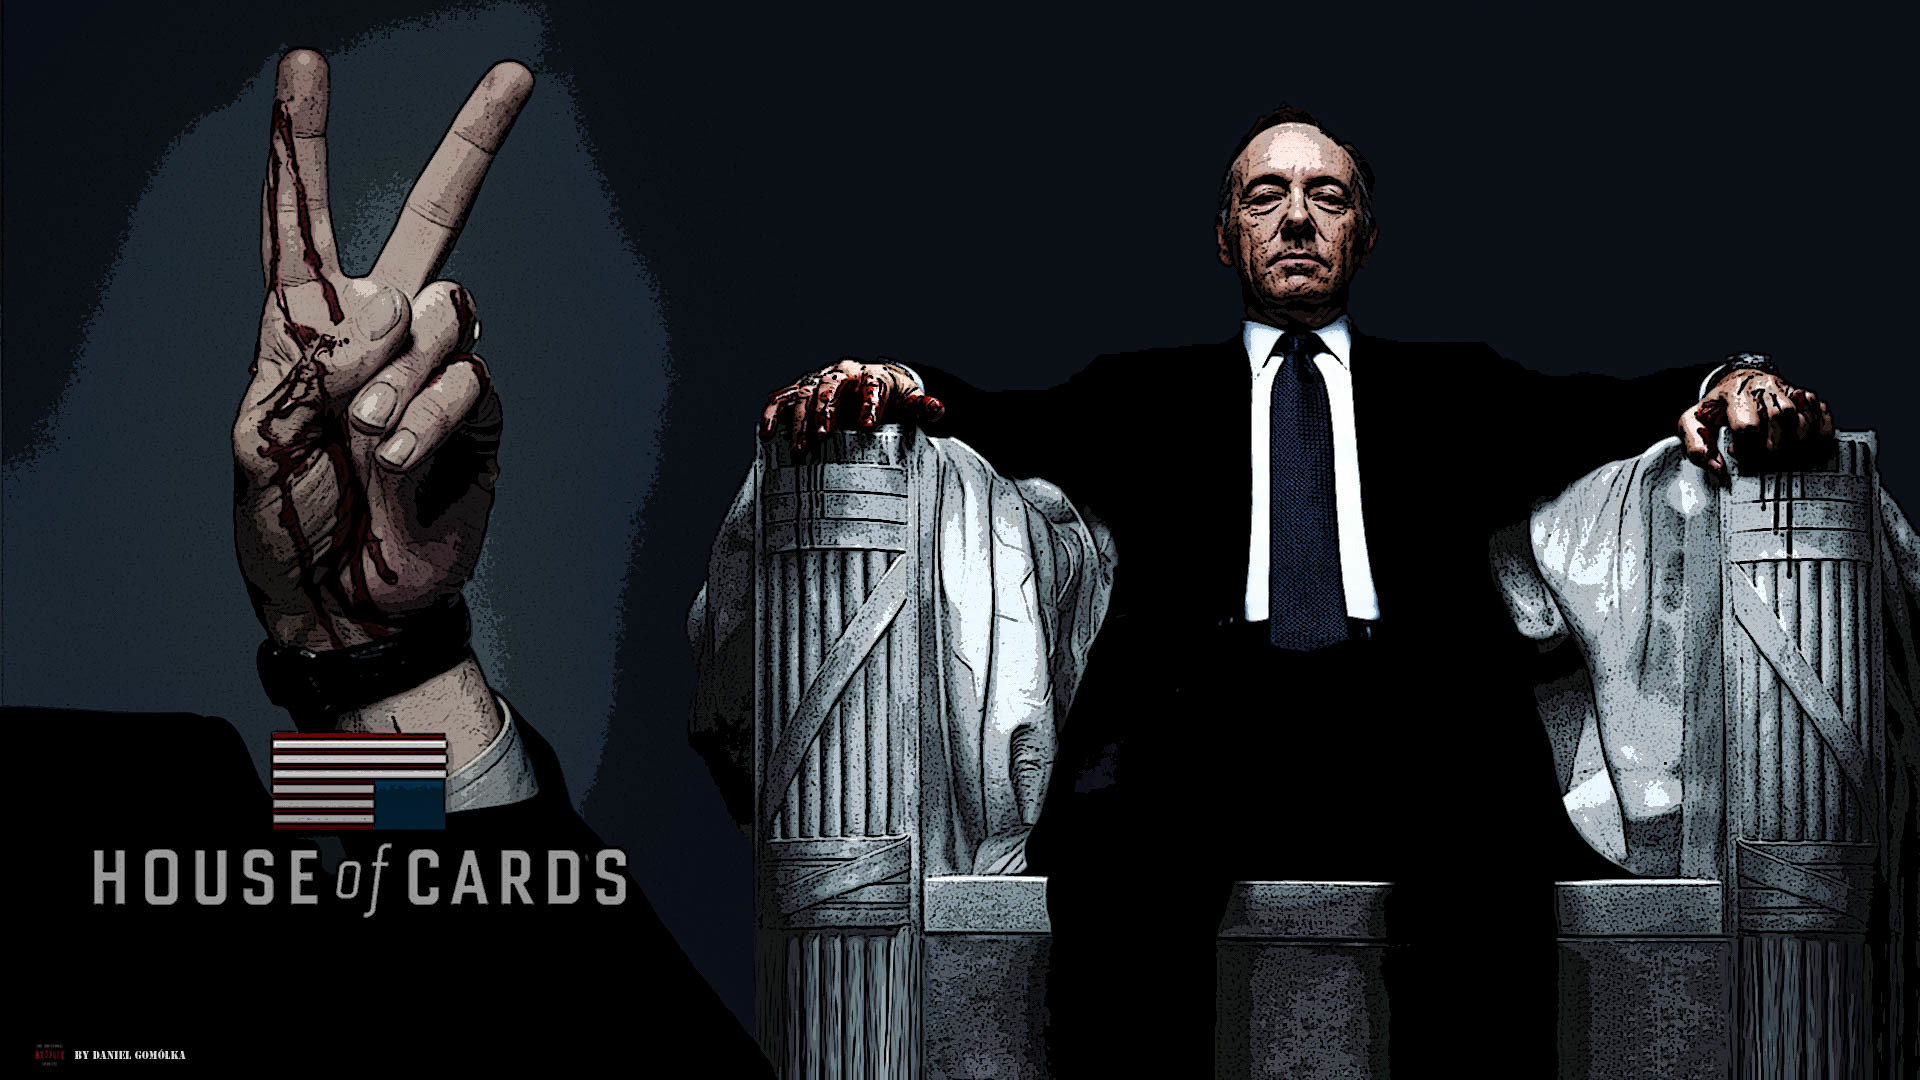 … house of cards amazing hd pictures images wallpapers high …